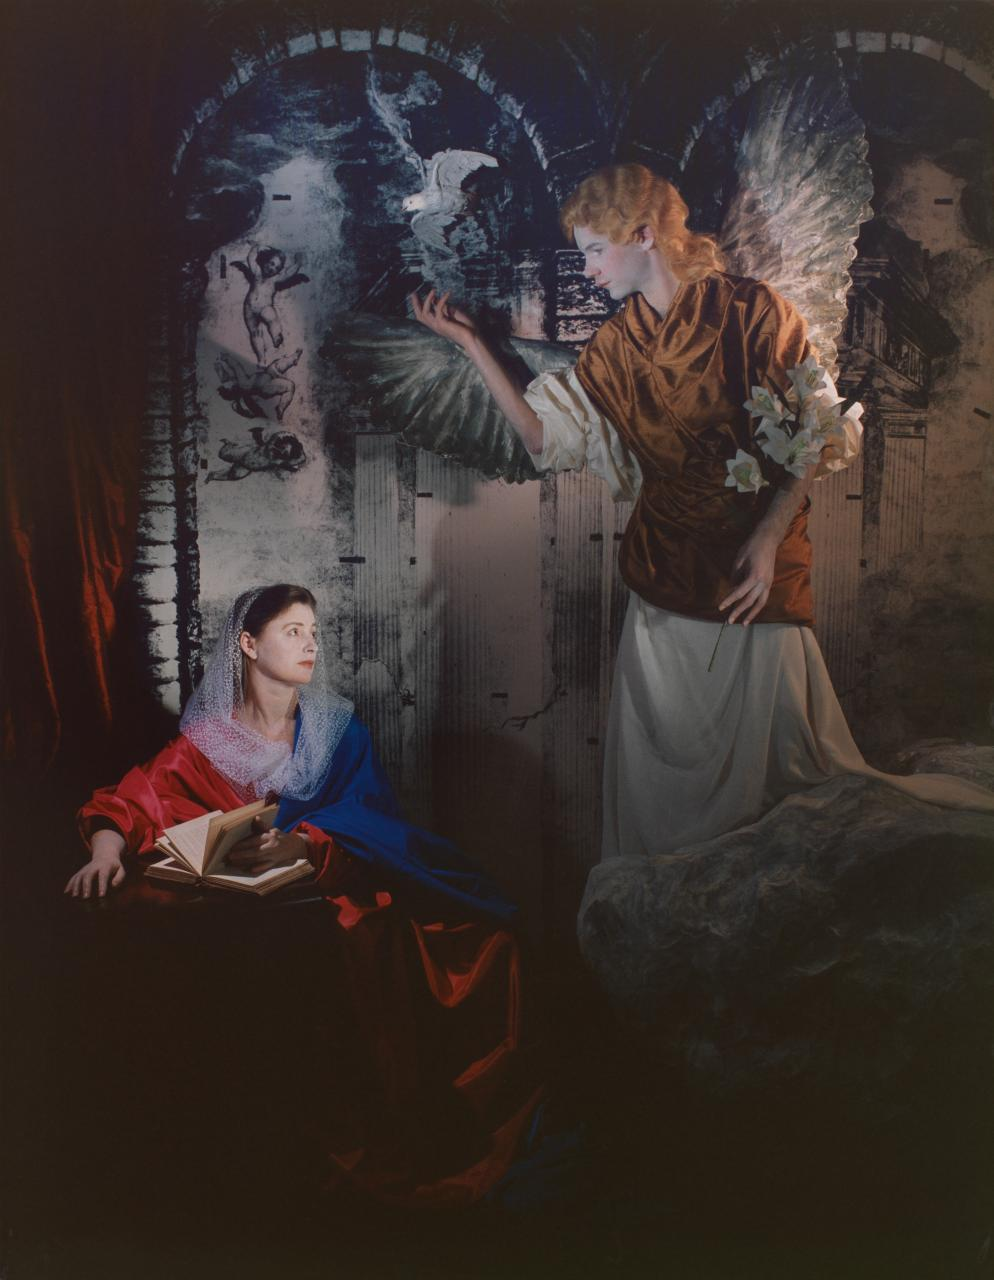 Rose Farrell & George Parkin,   The Annunciation  from the series  Repentance , 1988, chromogenic photograph, 164 x 127 cm.